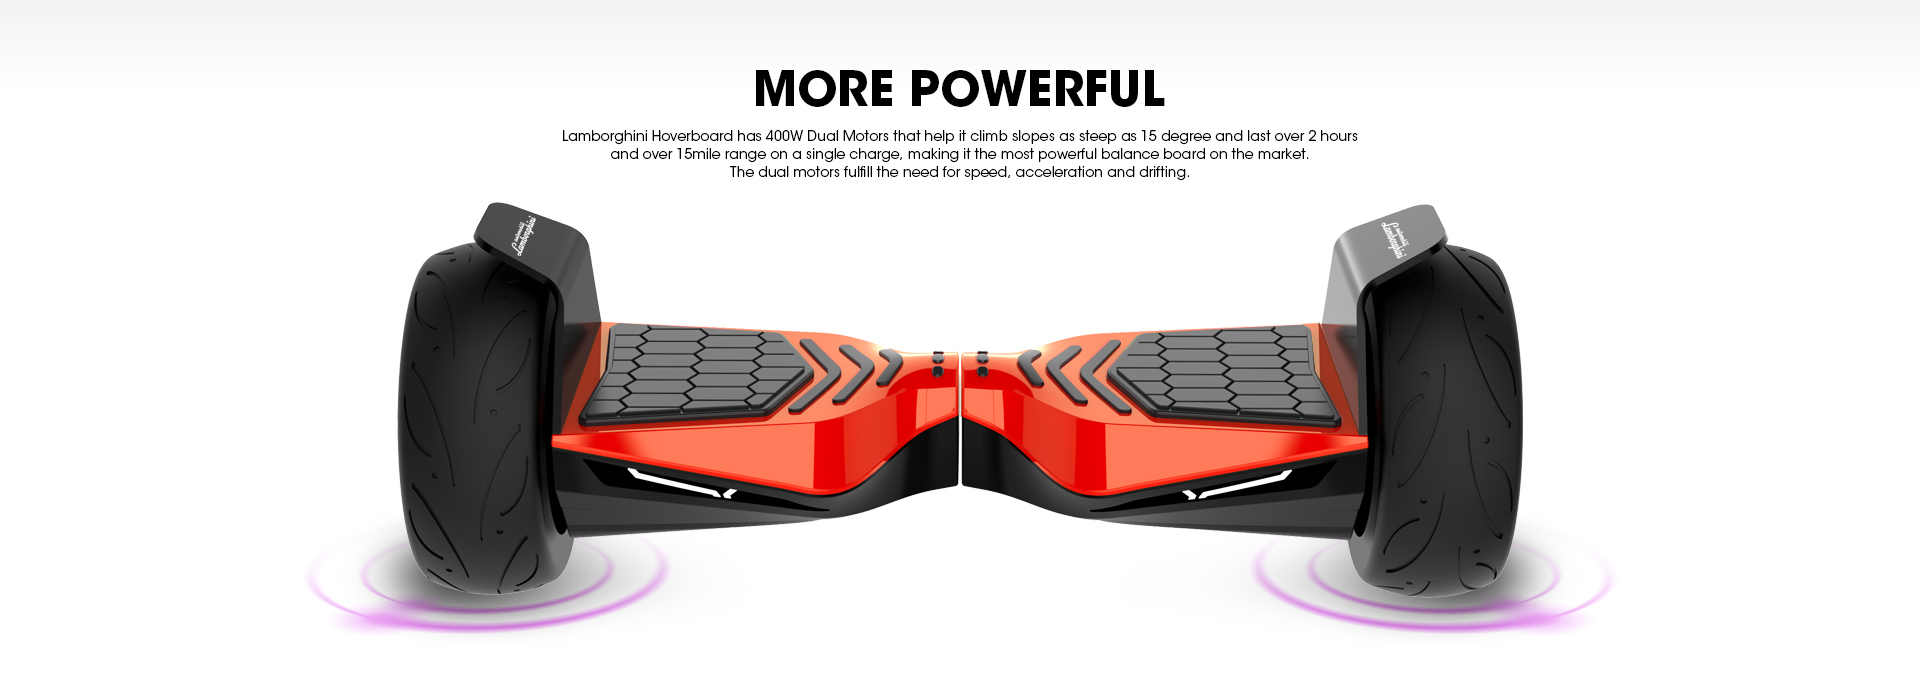 Red Lamborghini Hoverboard 8.5 inch Offical Automobili Lamborghini Authorized Bluetooth Hoverboard - 400W Dual Motors More Powerful